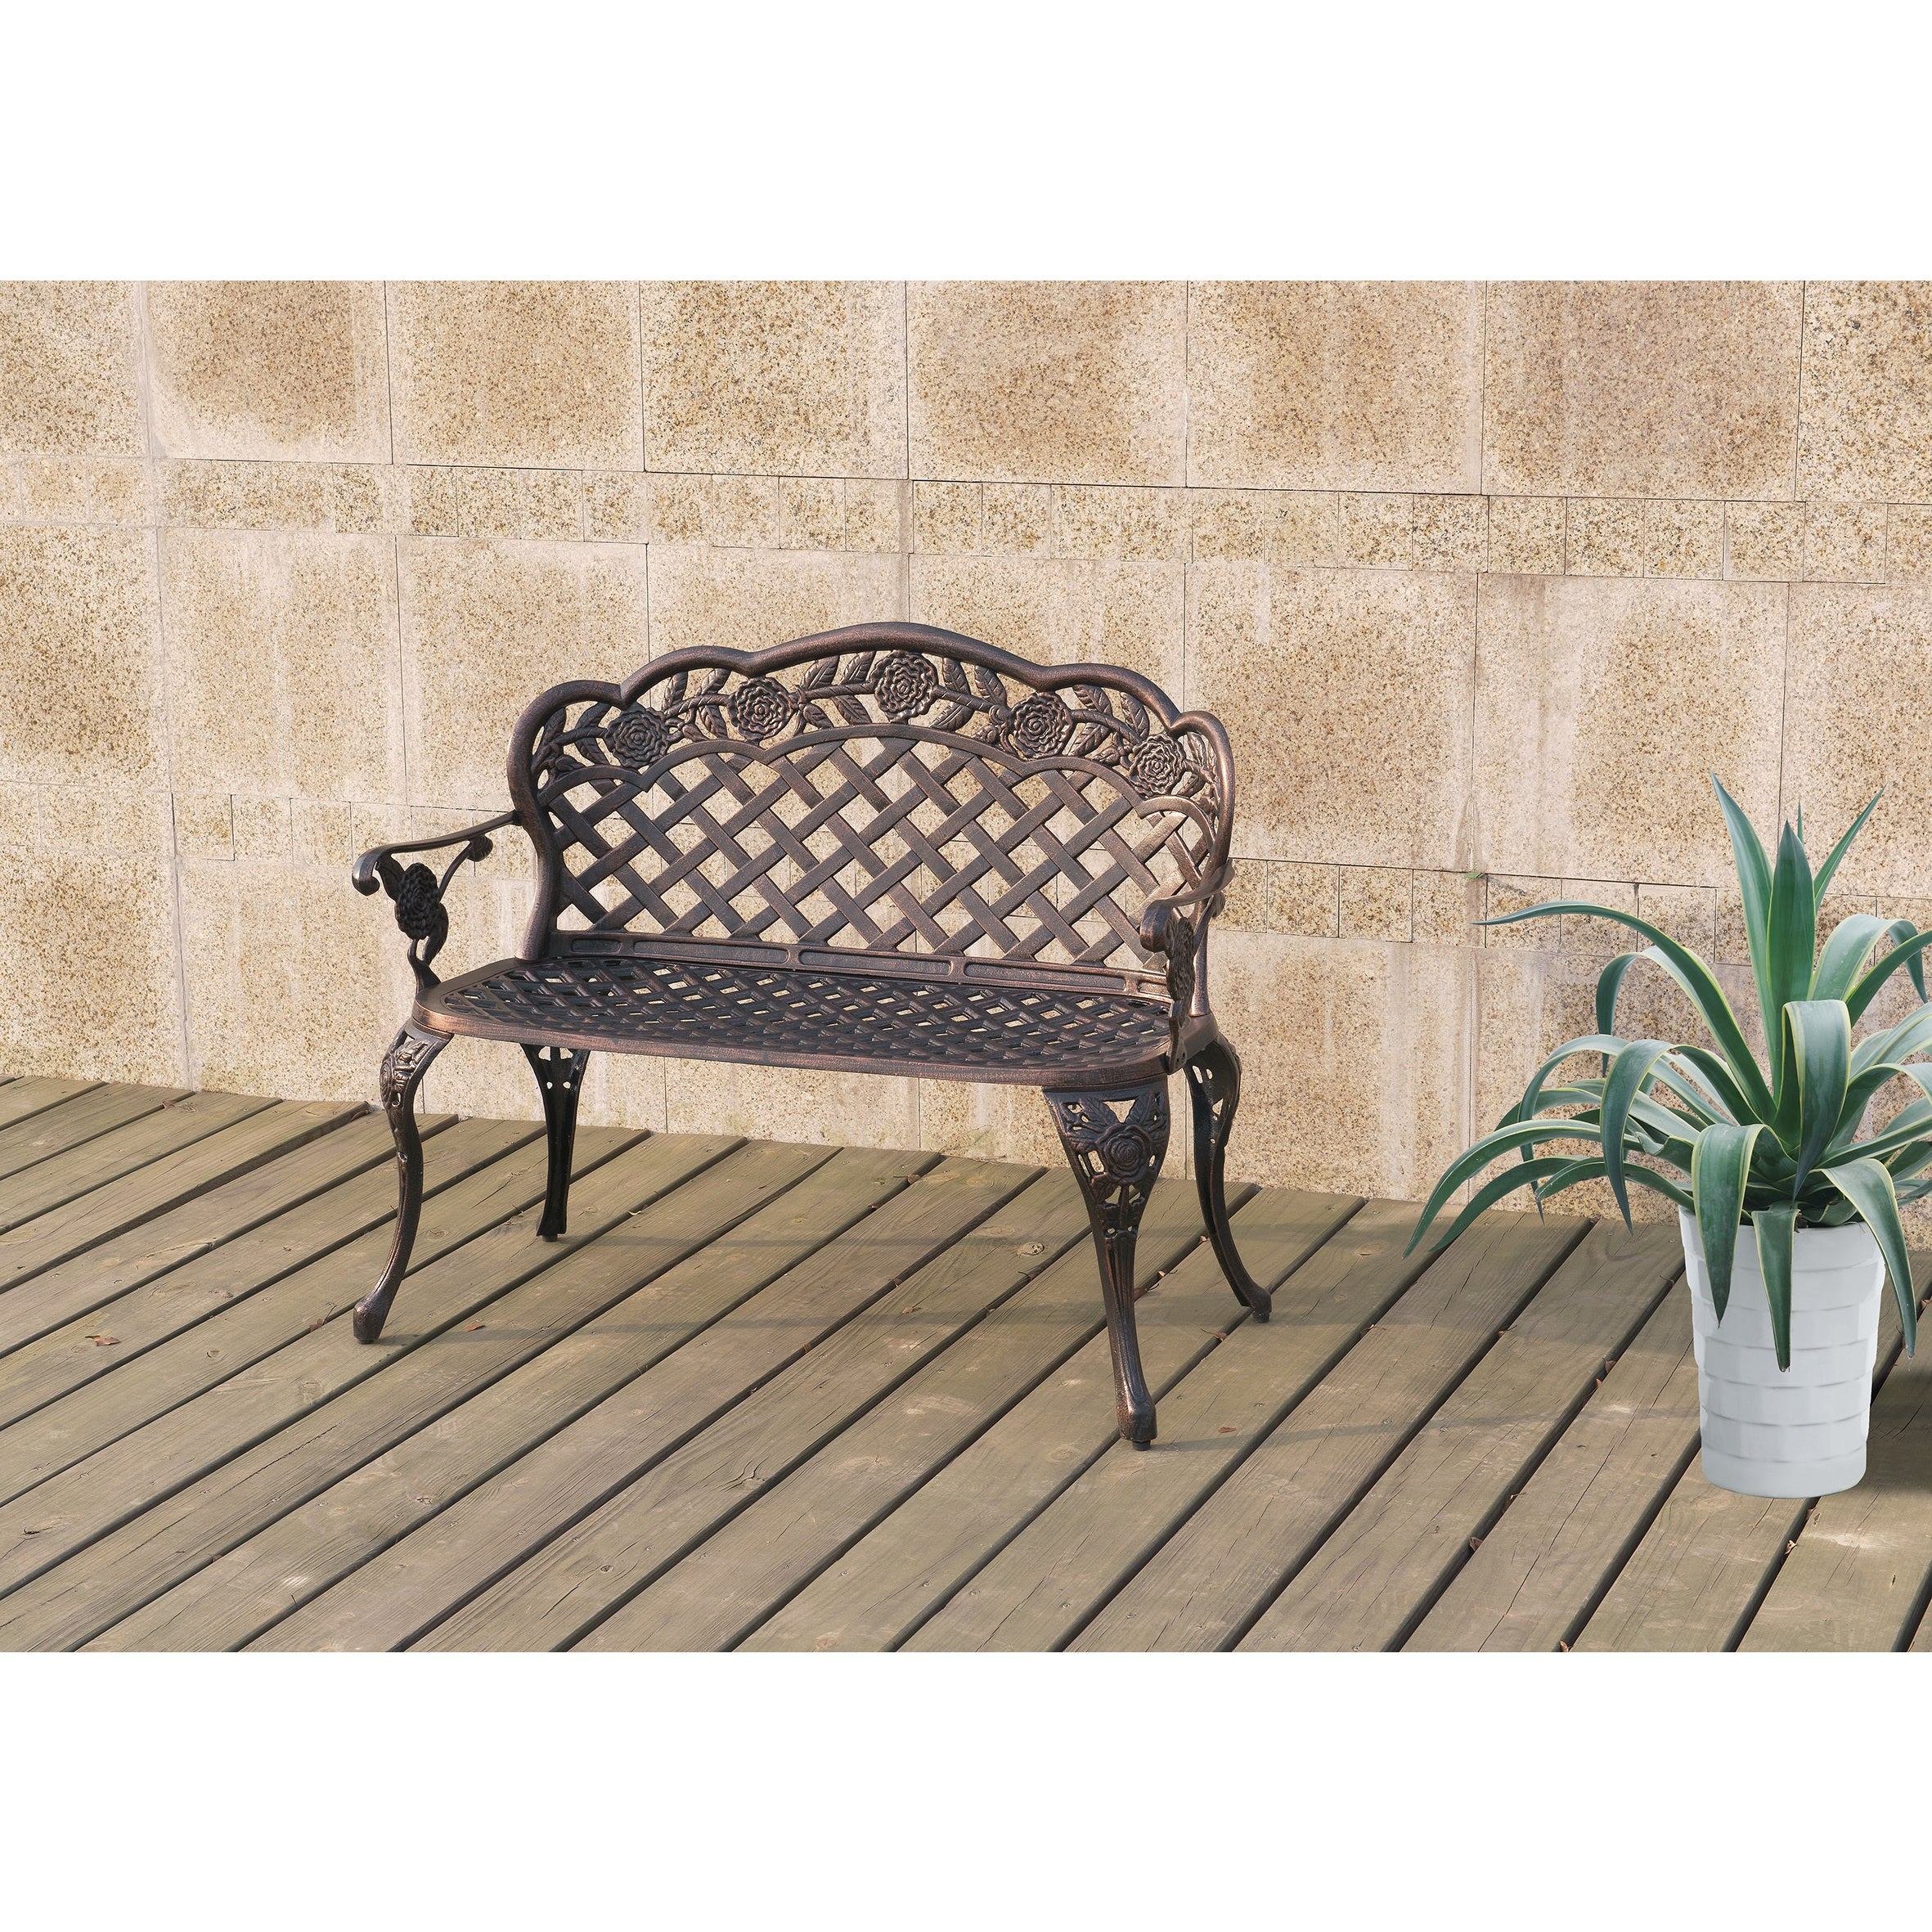 Poundex Lizkona All-Weather Outdoor Metal Bench (Bronze),...